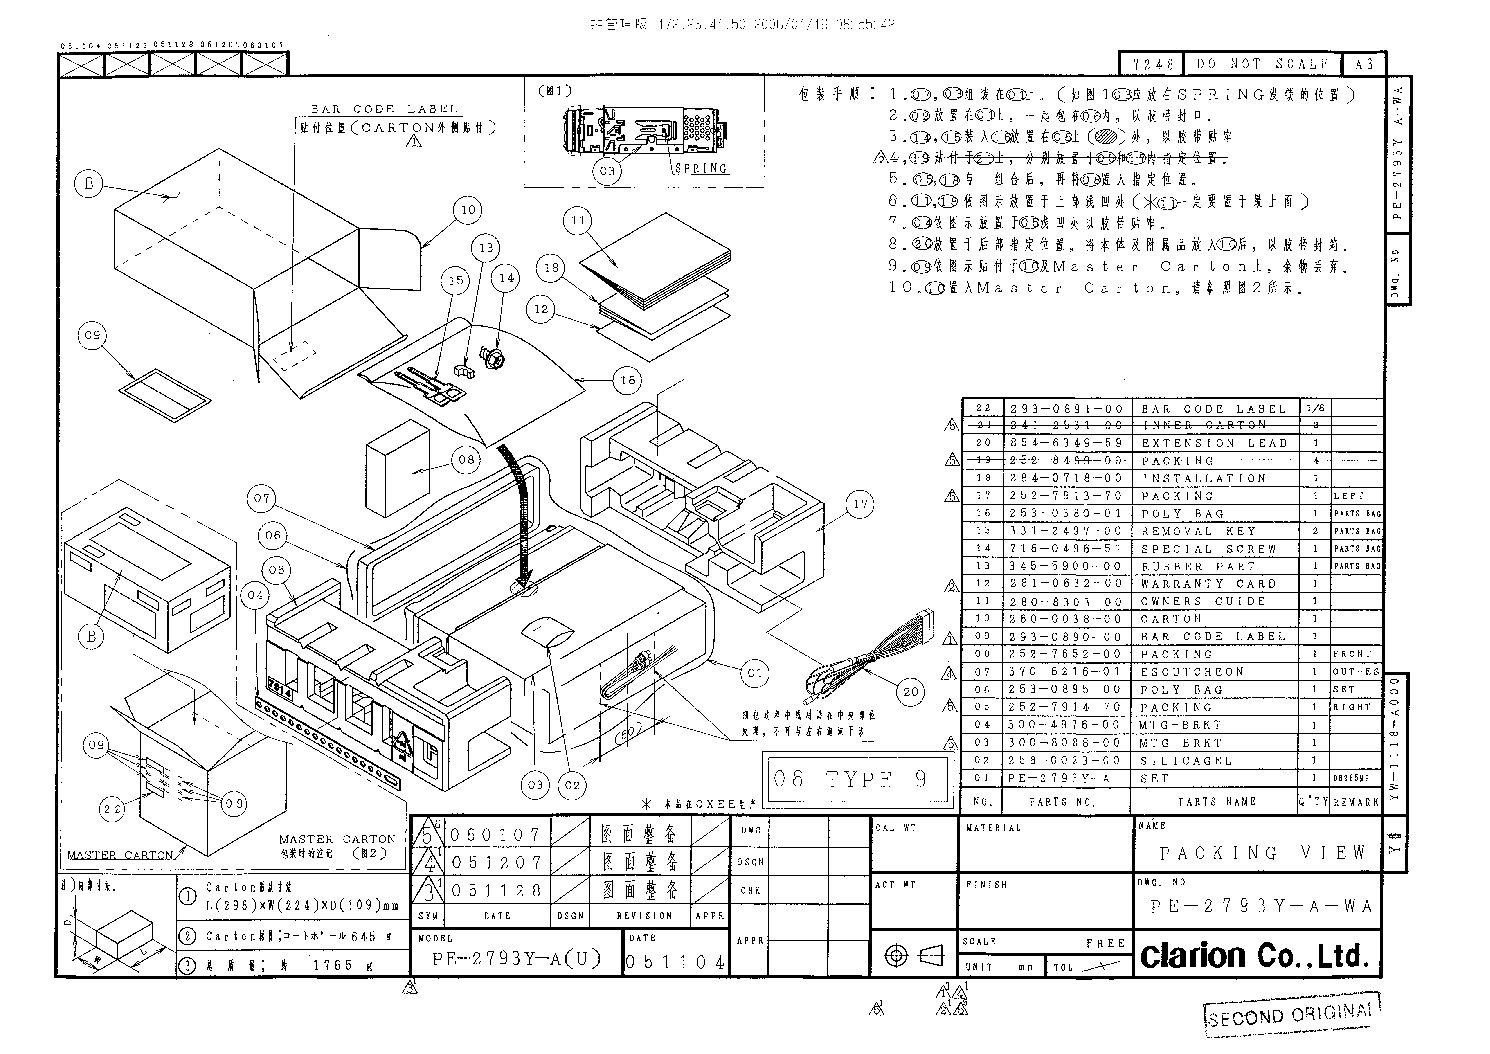 clarion pe2793ya wa service manual download schematics. Black Bedroom Furniture Sets. Home Design Ideas